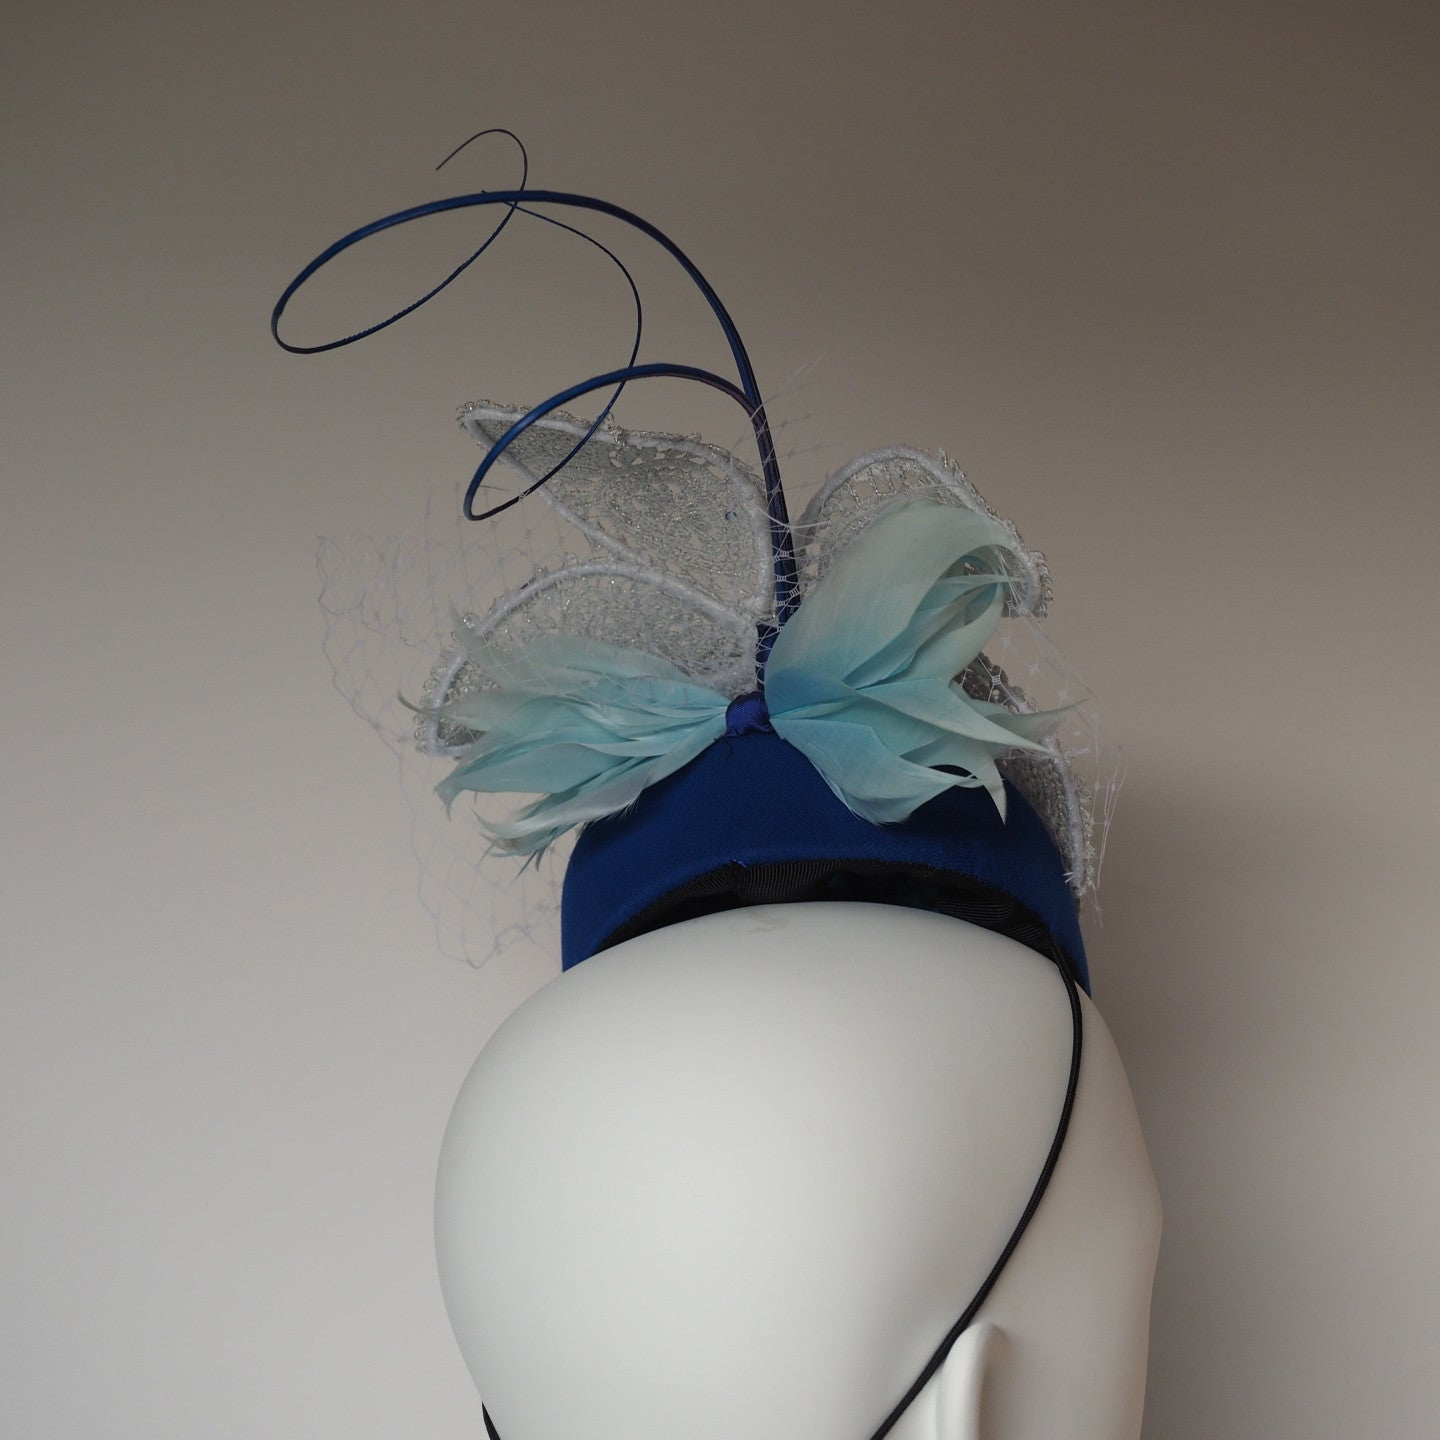 Glamorous lace Headpiece - Made to Order in any colour or material - NOELEEN MILLINERY HONG KONG